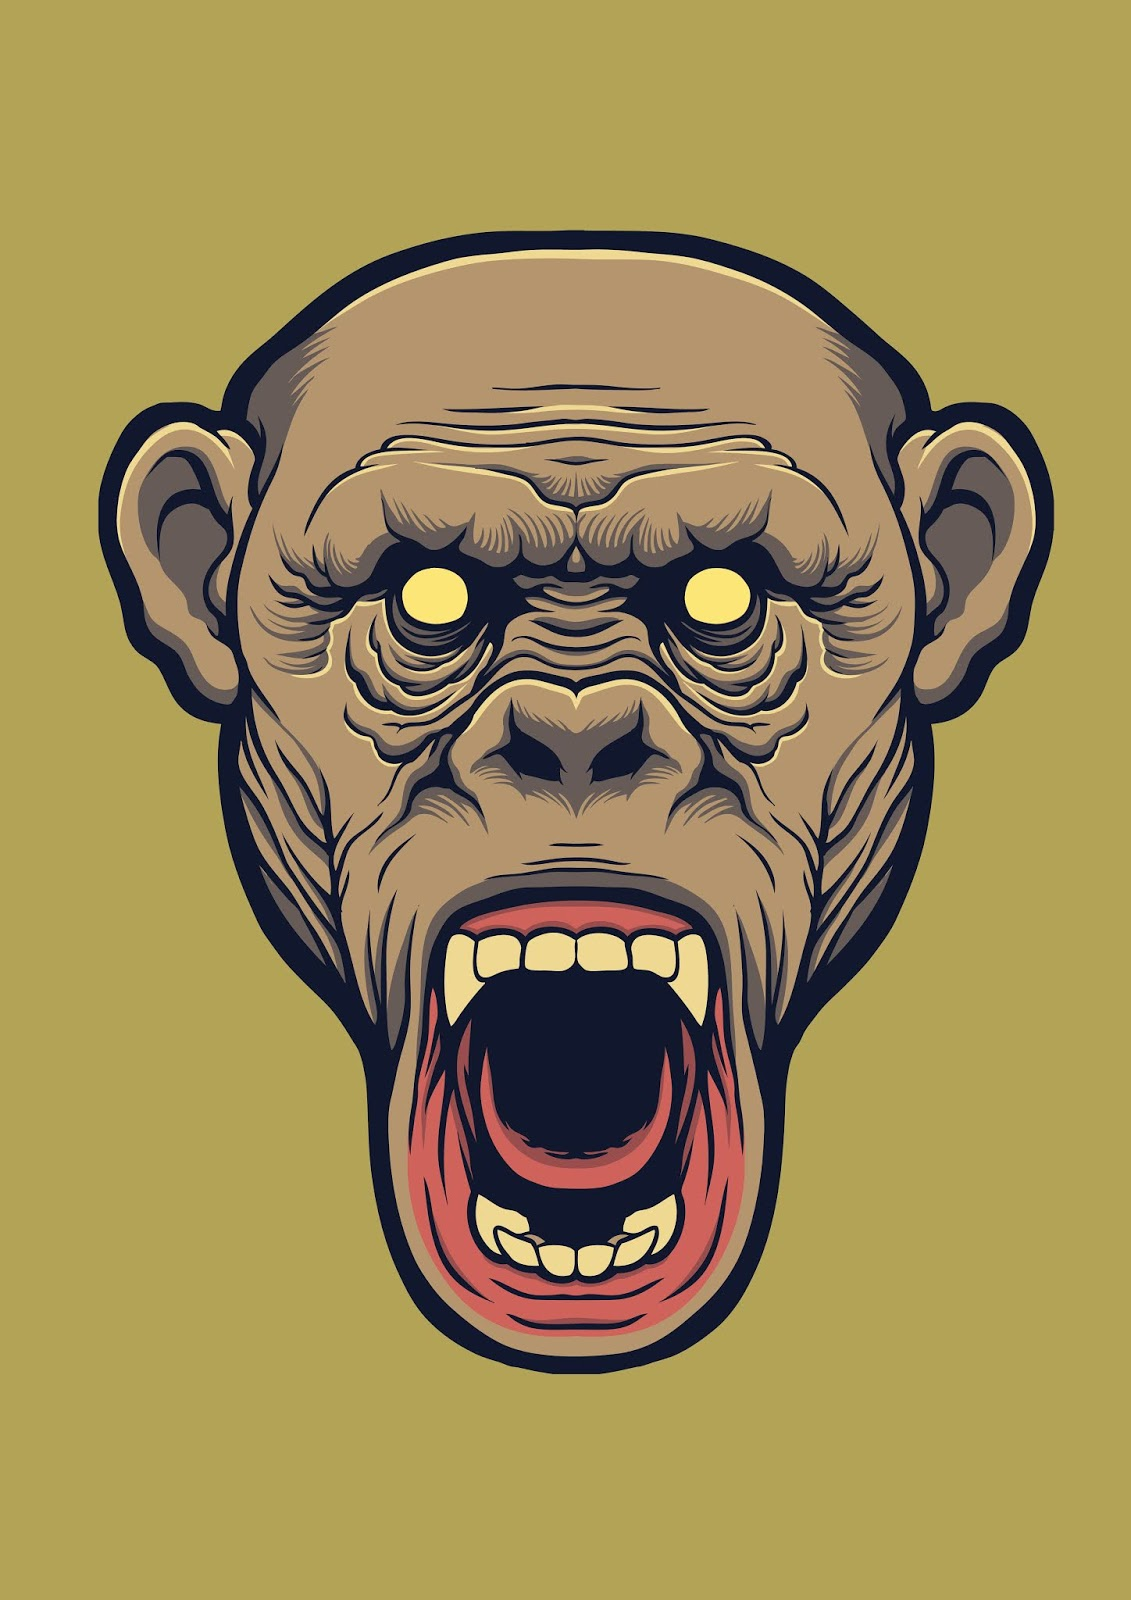 Chimpanzee Head Design Illustration Free Download Vector CDR, AI, EPS and PNG Formats